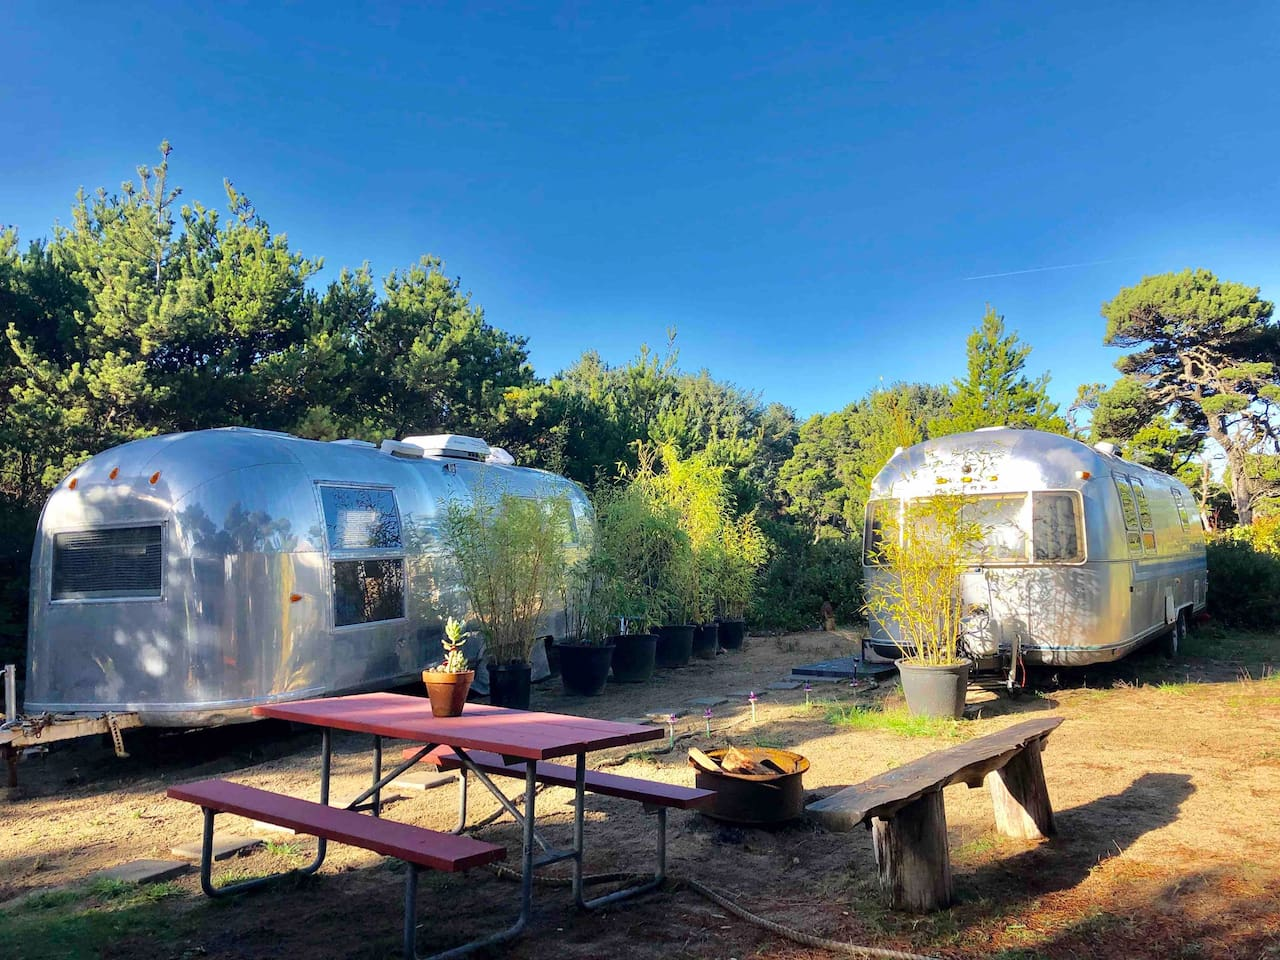 """Welcoming to camp the 64 Airstream Land Yacht! (Pictured on the left) Comfy and bright inside. Private entrance, under the shore pines with bench and charcoal grill. Relax to the sounds of the surf just one block away via the magical """"hobbit trail""""."""